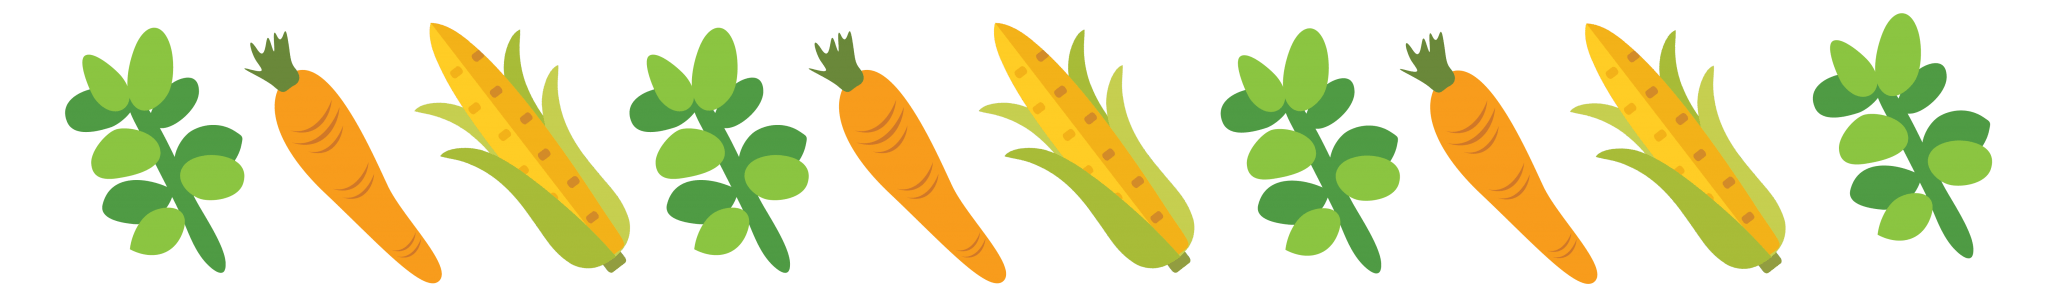 Houston Community Garden Carrot Corn Leaves Illustration